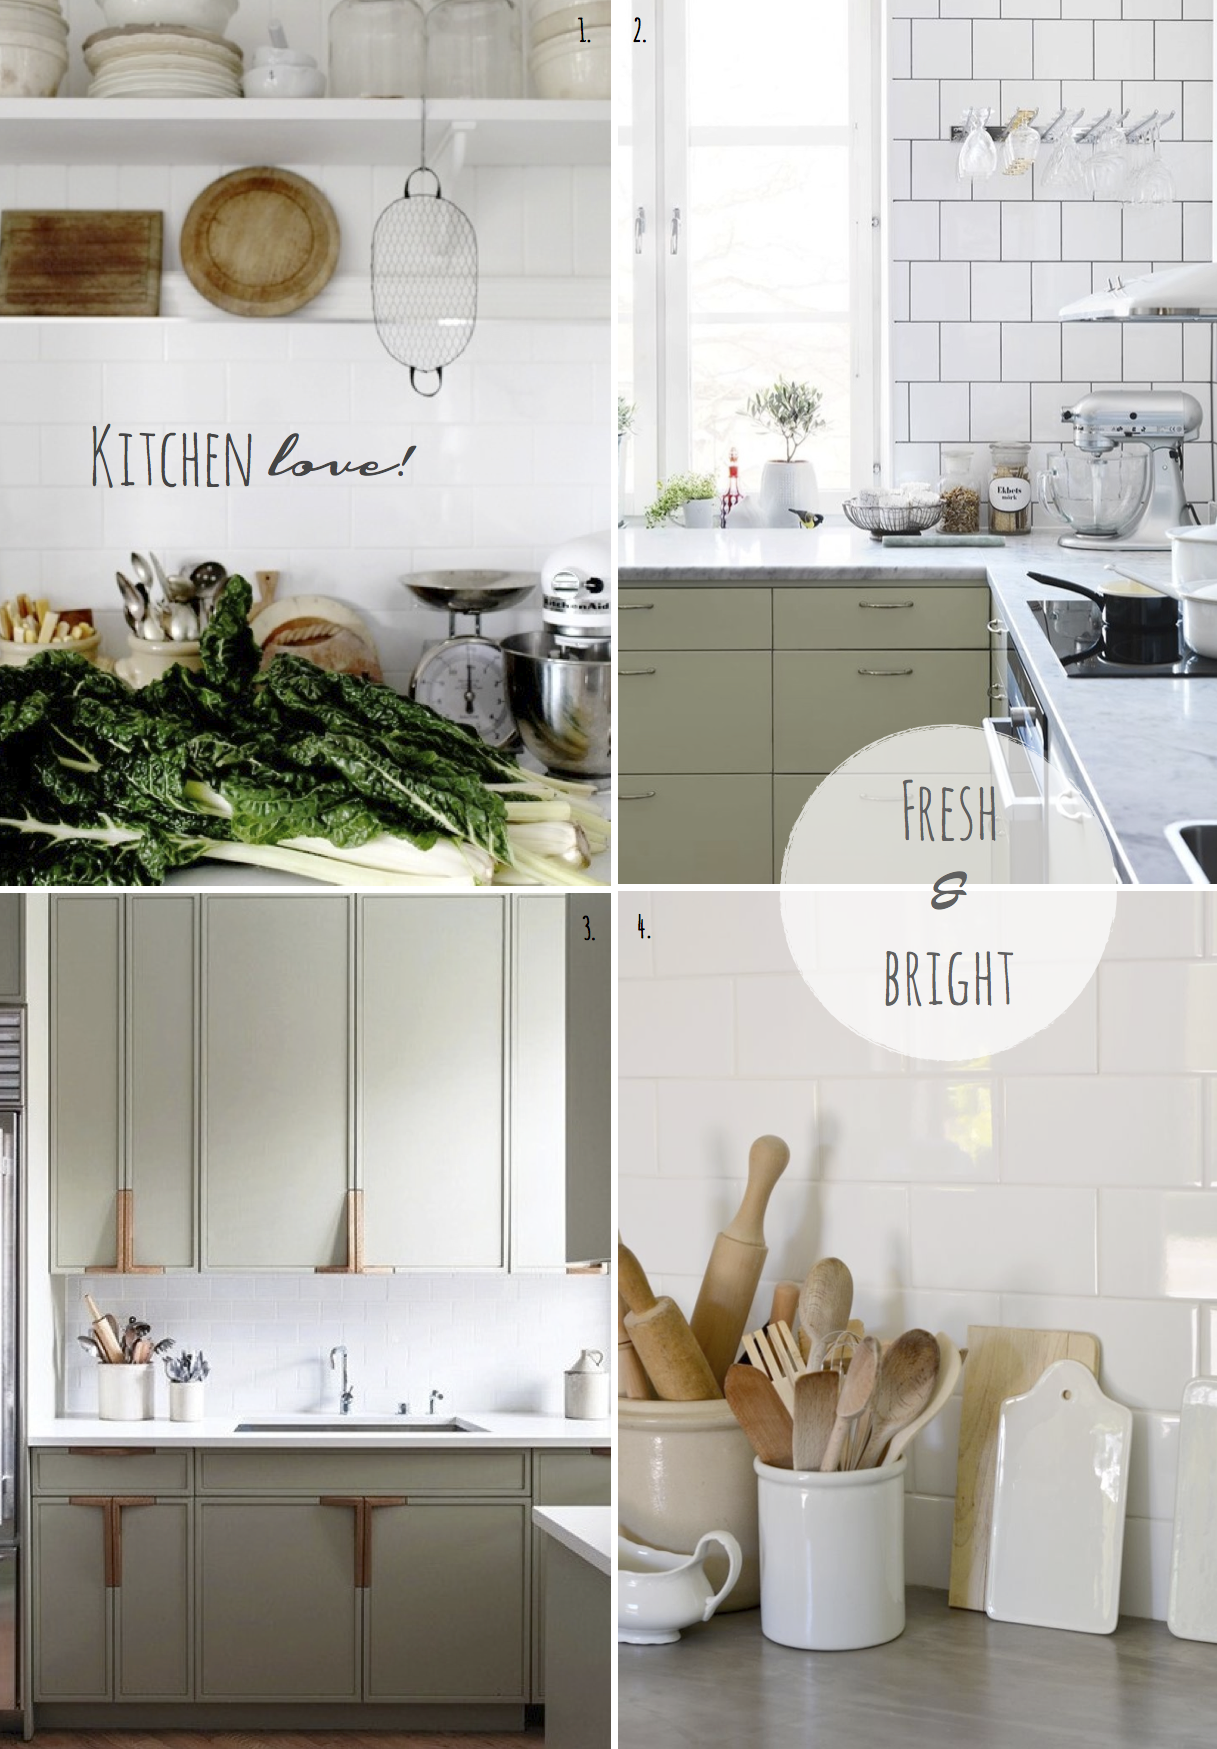 Kitchen Redesign on a Budget: The Inspiration! - Avenue Lifestyle ...